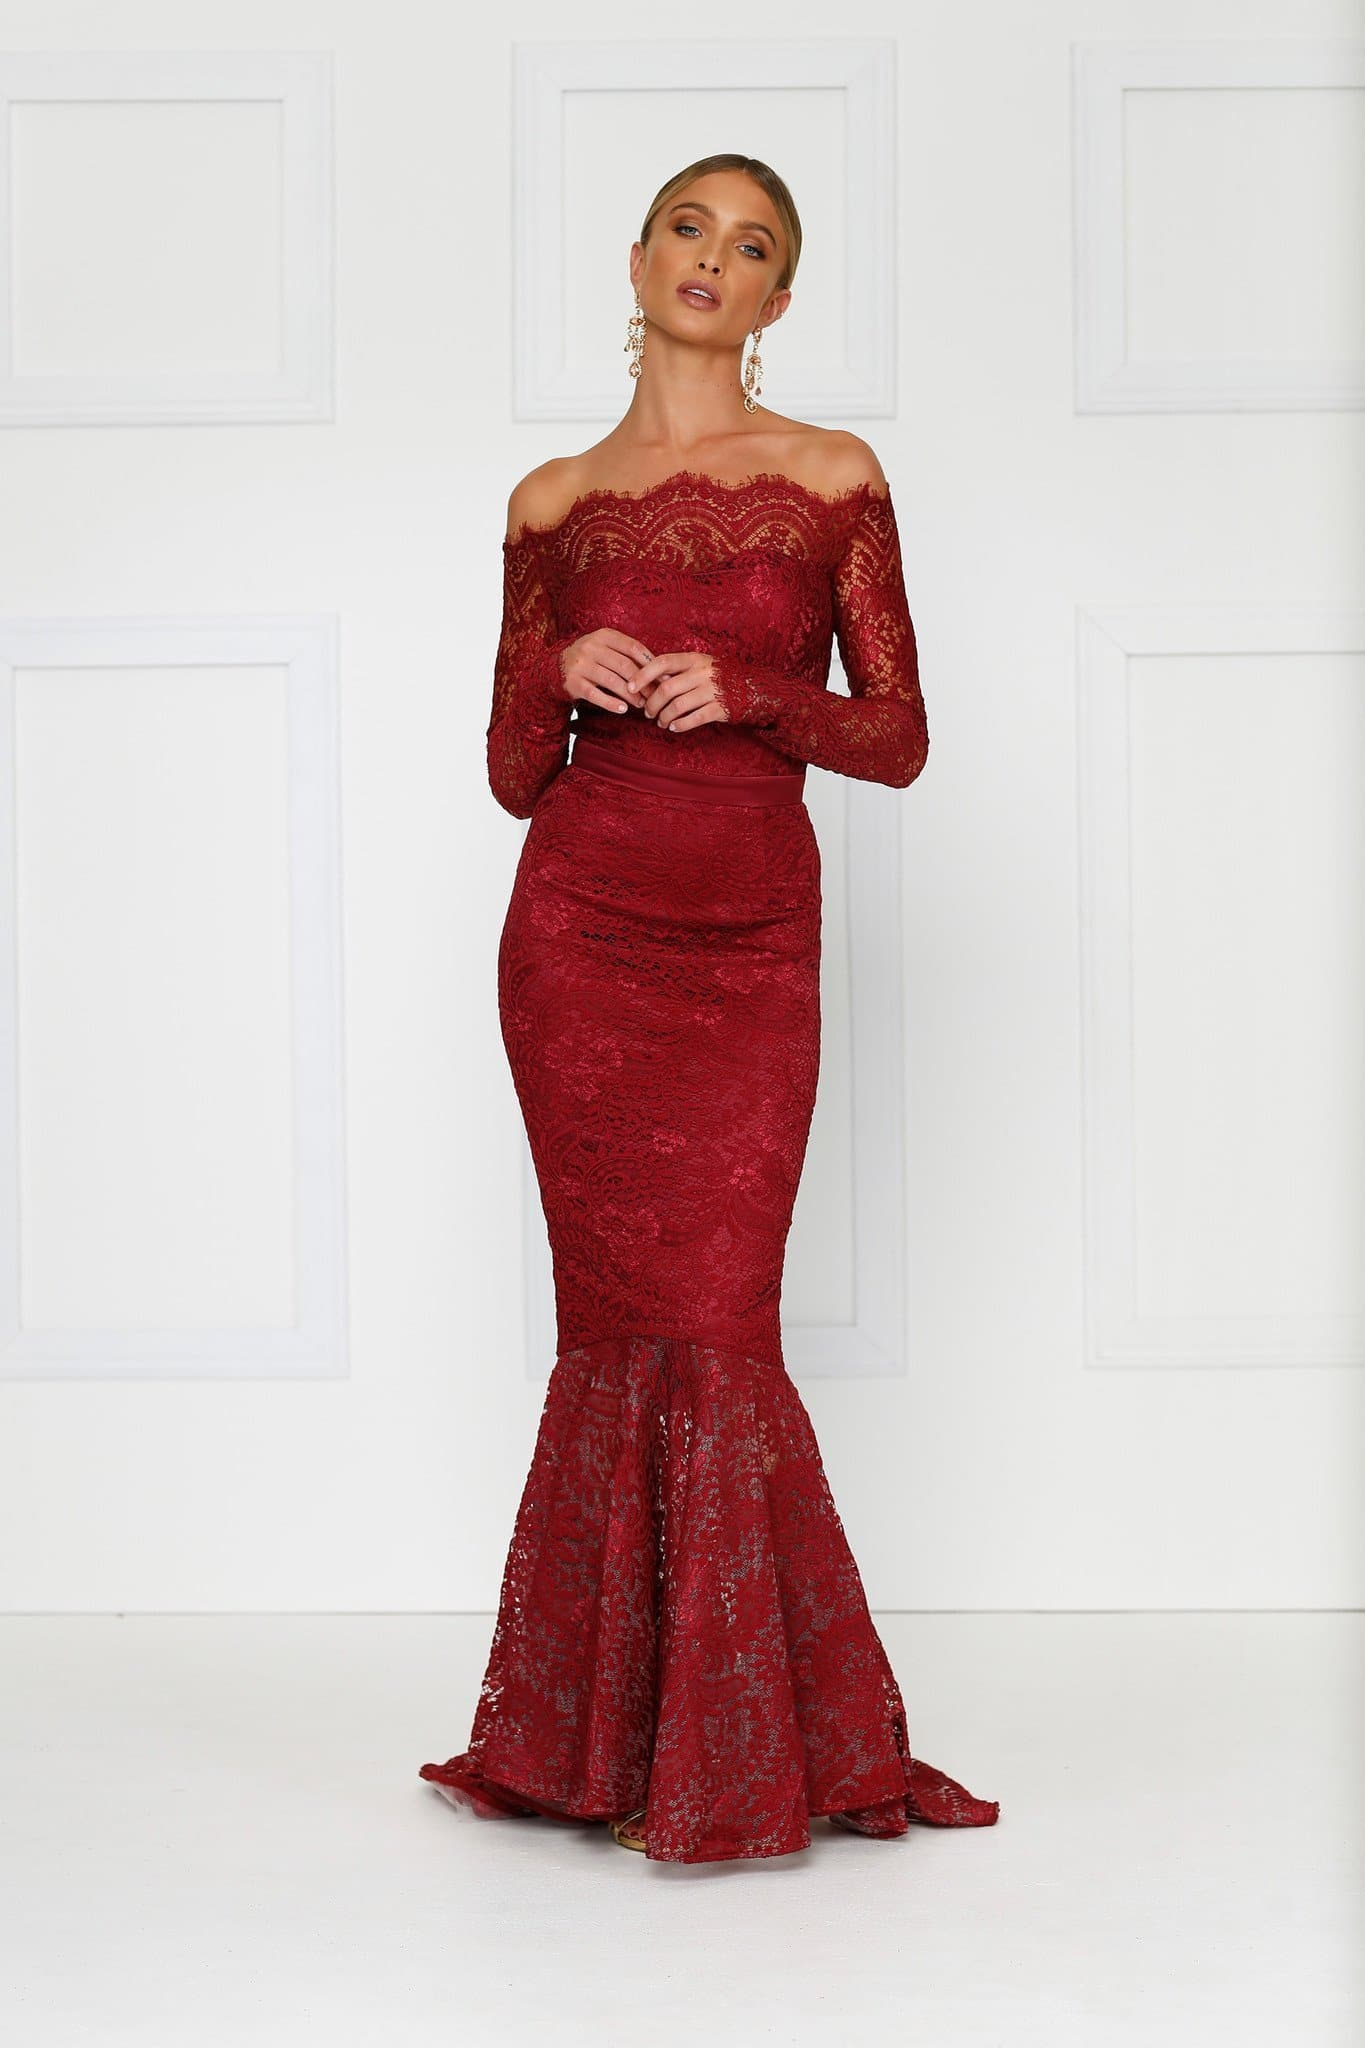 eff168cda0 Kamali - Burgundy Lace Gown with Off-Shoulder Long Sleeves